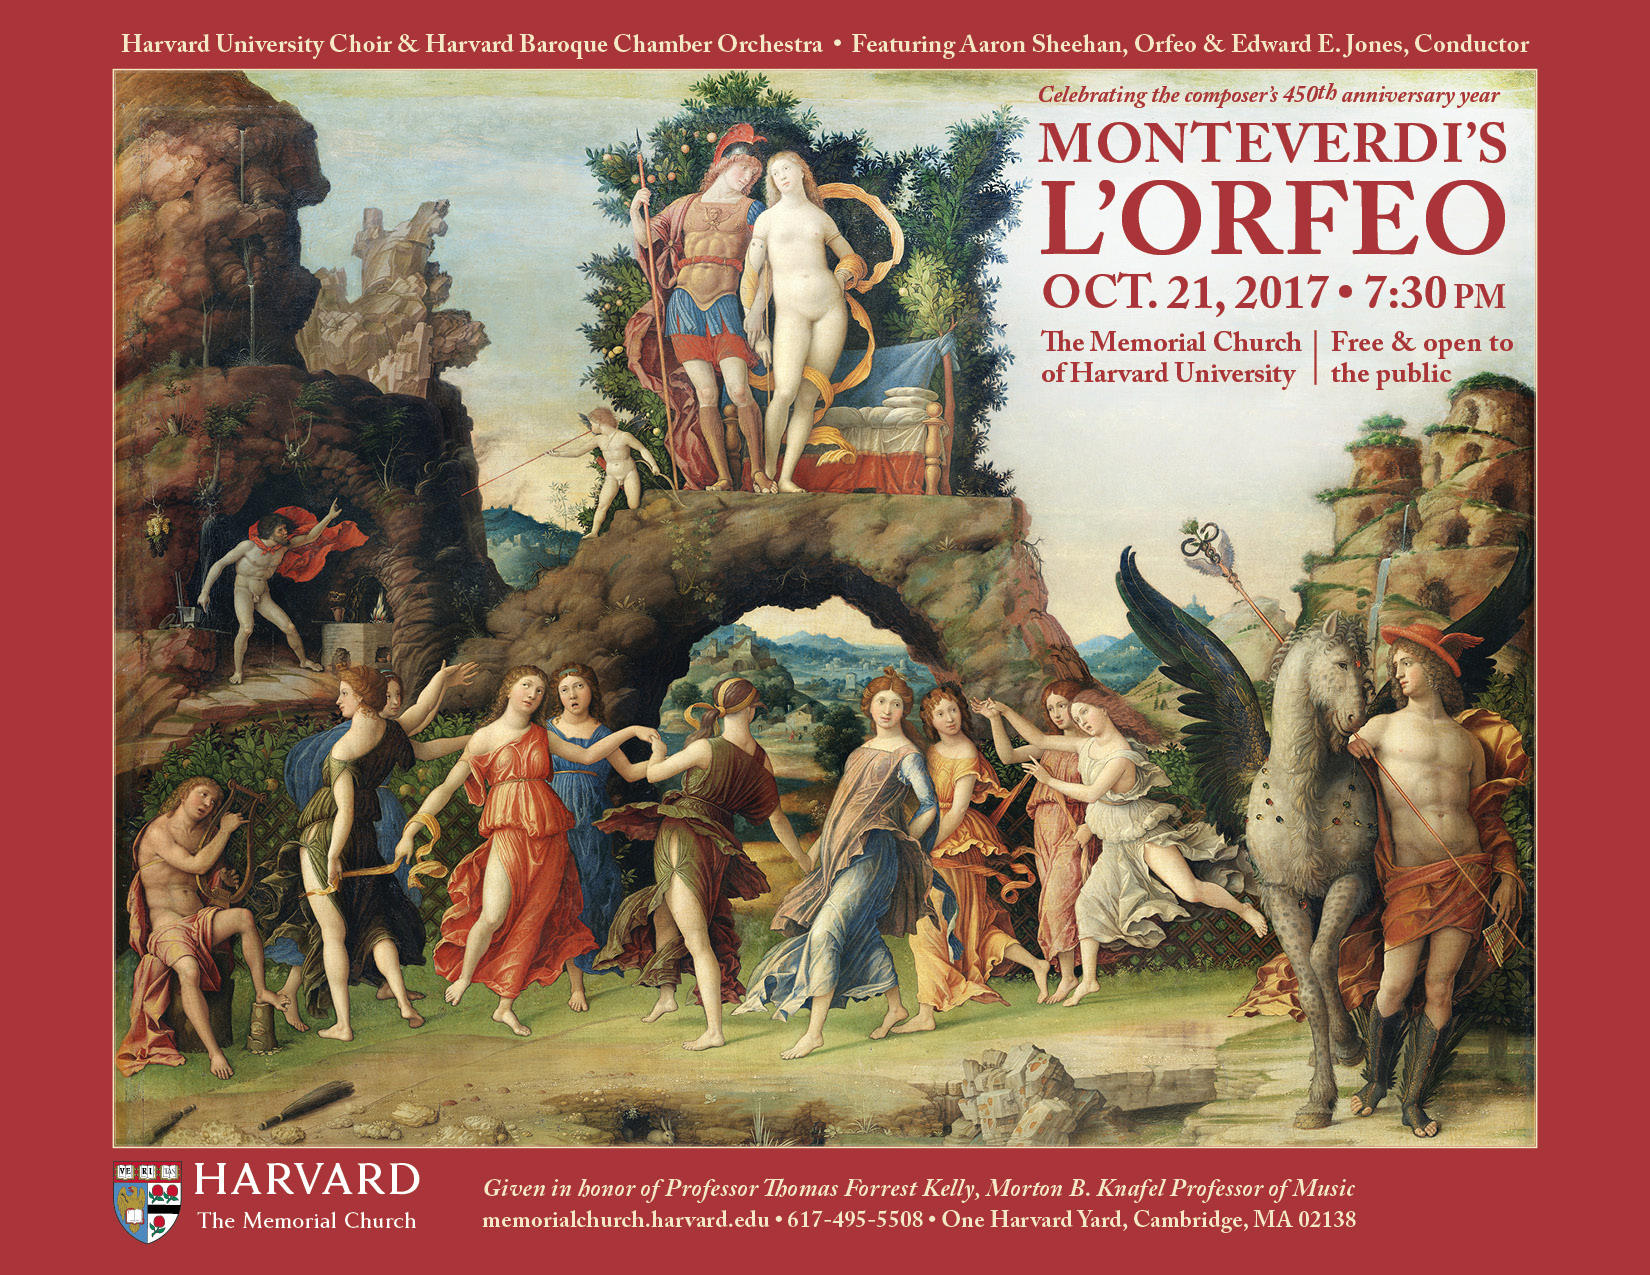 Harvard University Choir and Harvard Baroque Chamber Orchestra present a concert performance of Monteverdi's ORFEO